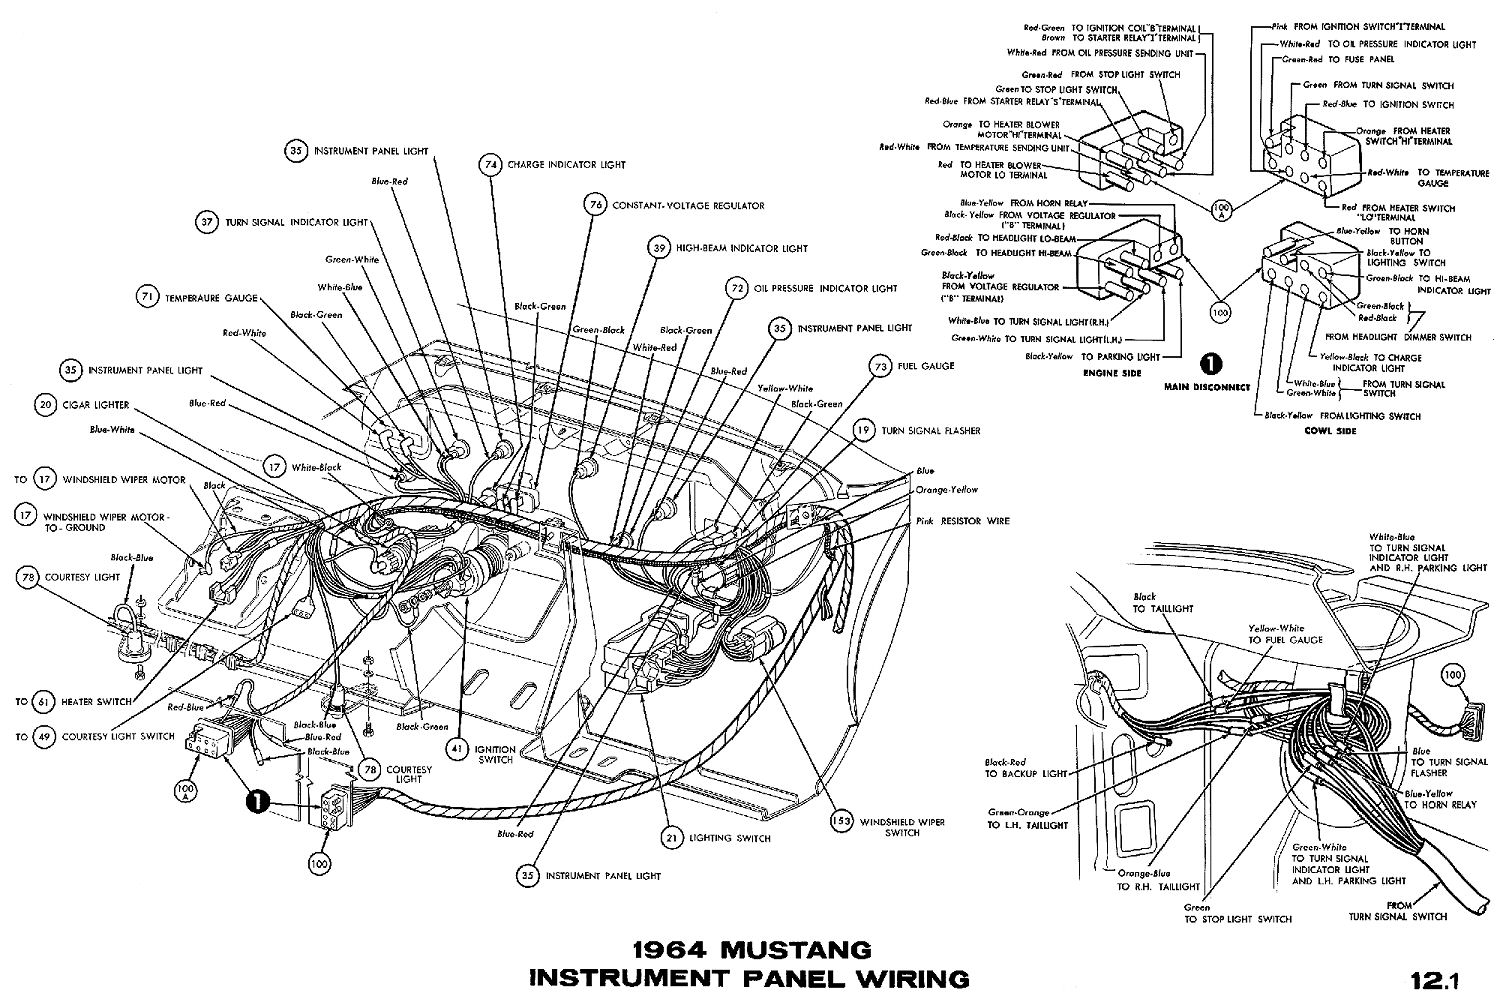 641 2 Mustang Convertible Wiring Diagram Library 1972 C10 Dash Instrument Cluster Connections